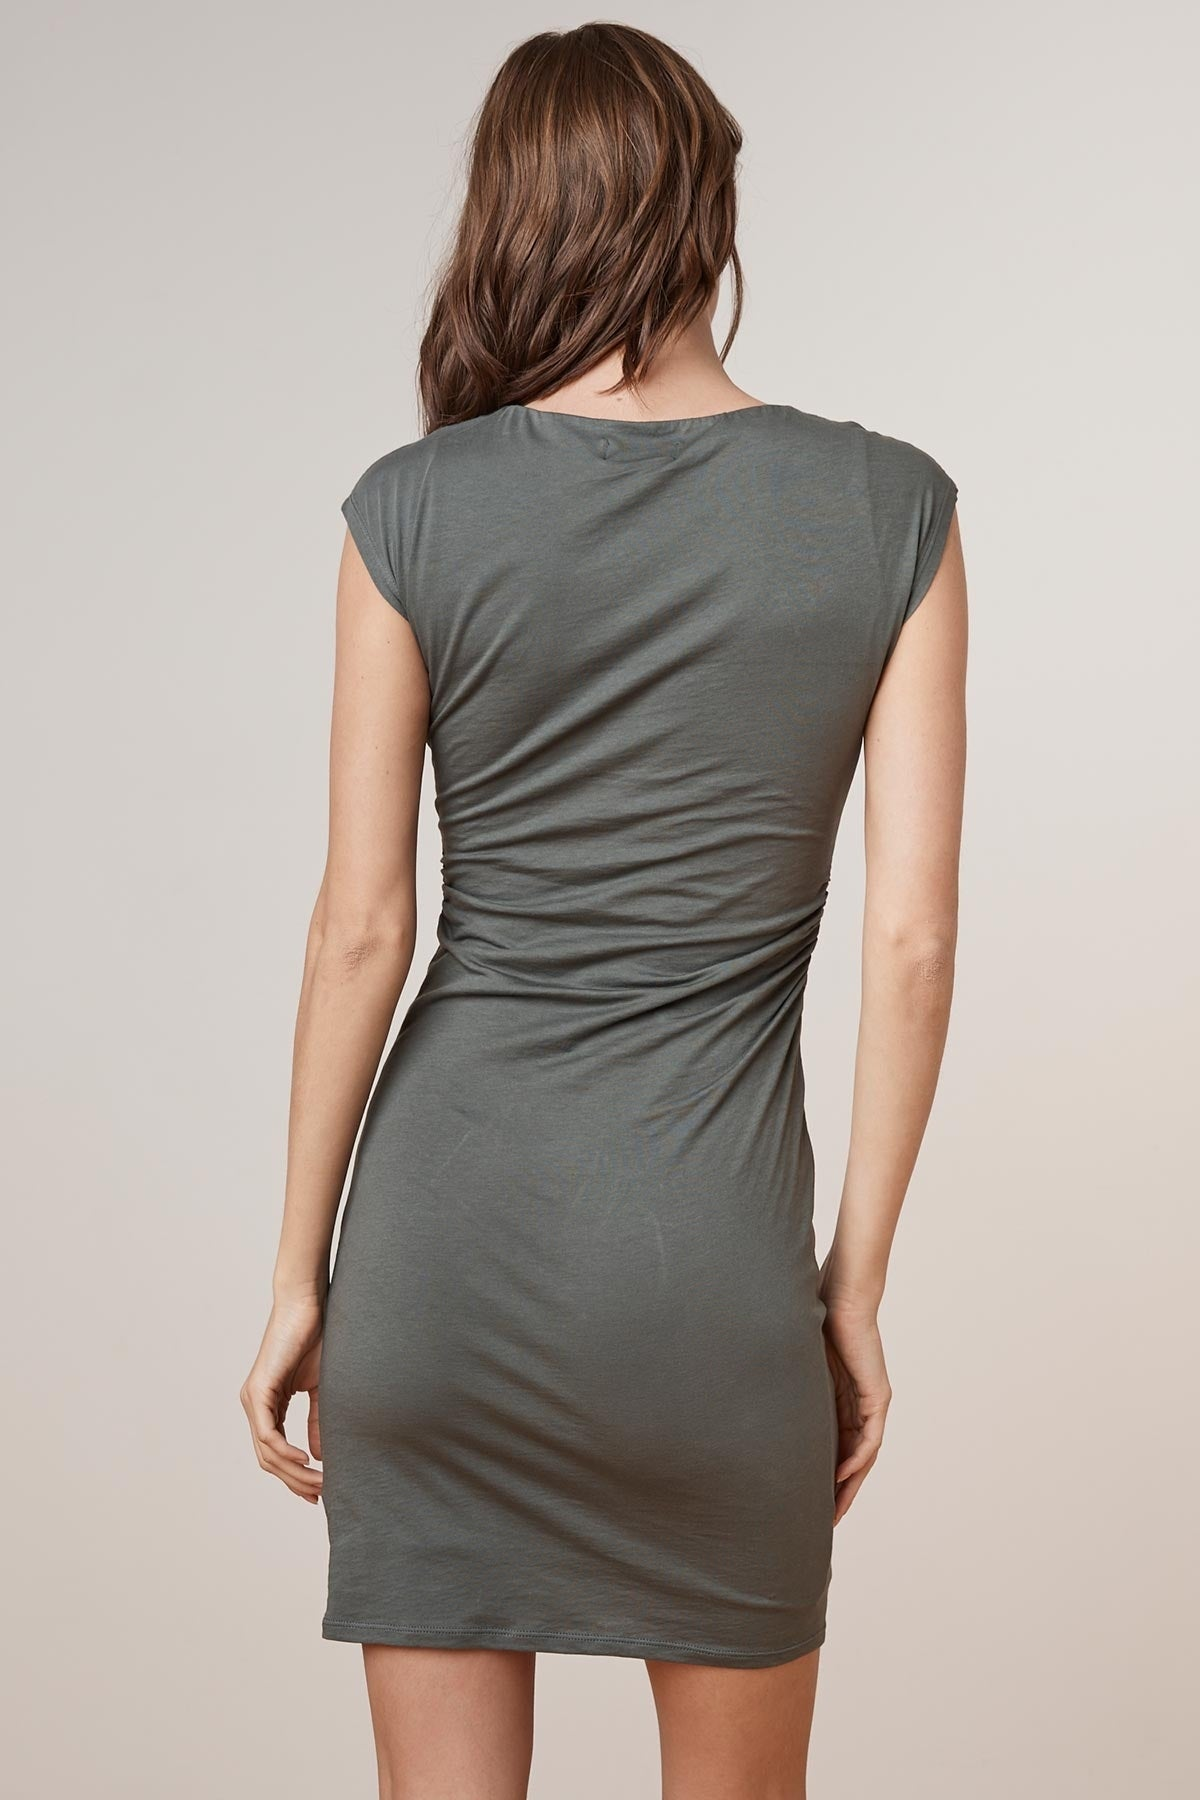 VITTORIA GAUZY WHISPER CREW NECK DRESS